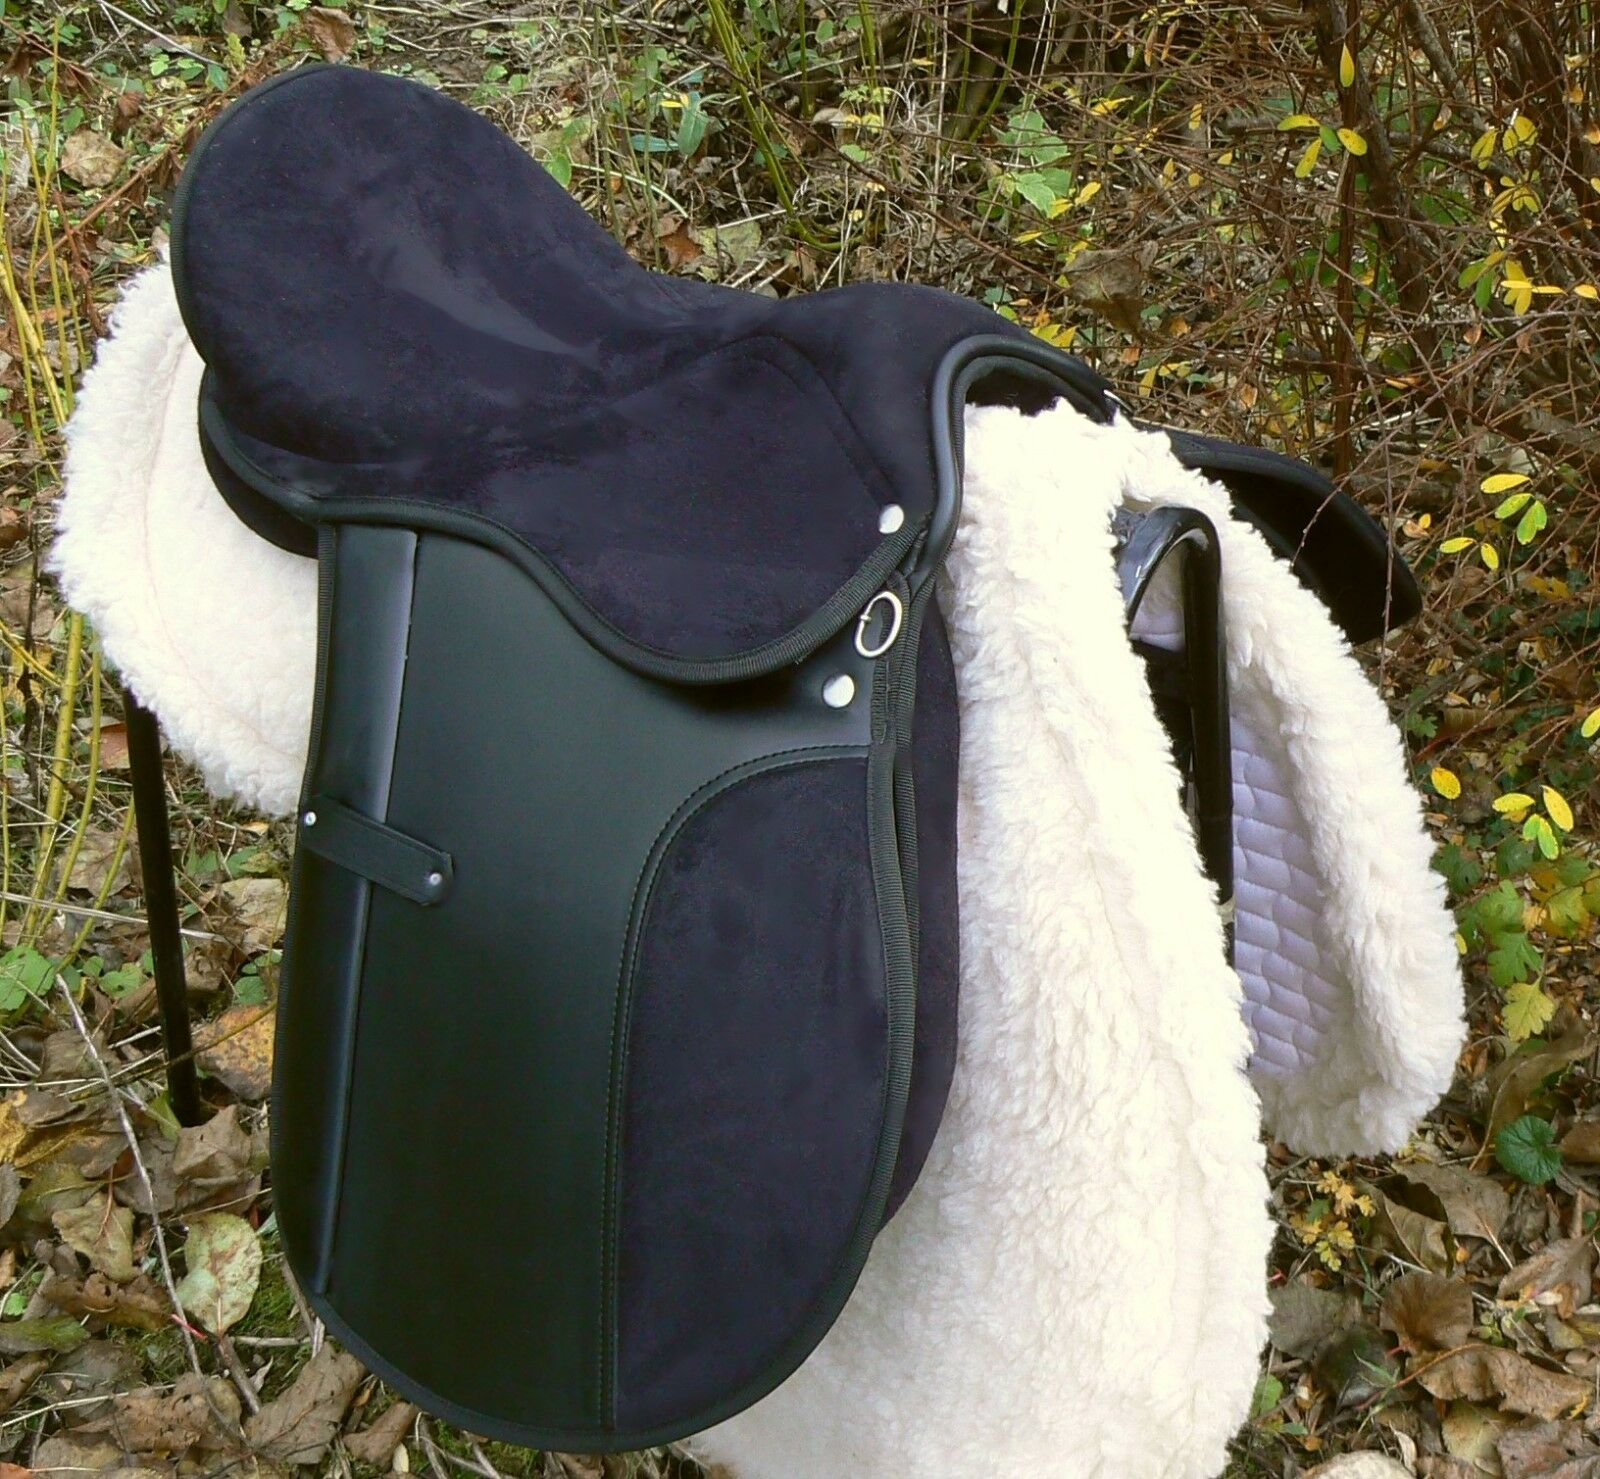 Best Seller Synthetic NON-SLIP FLEXi tree GP saddle- with leathers and stirrups